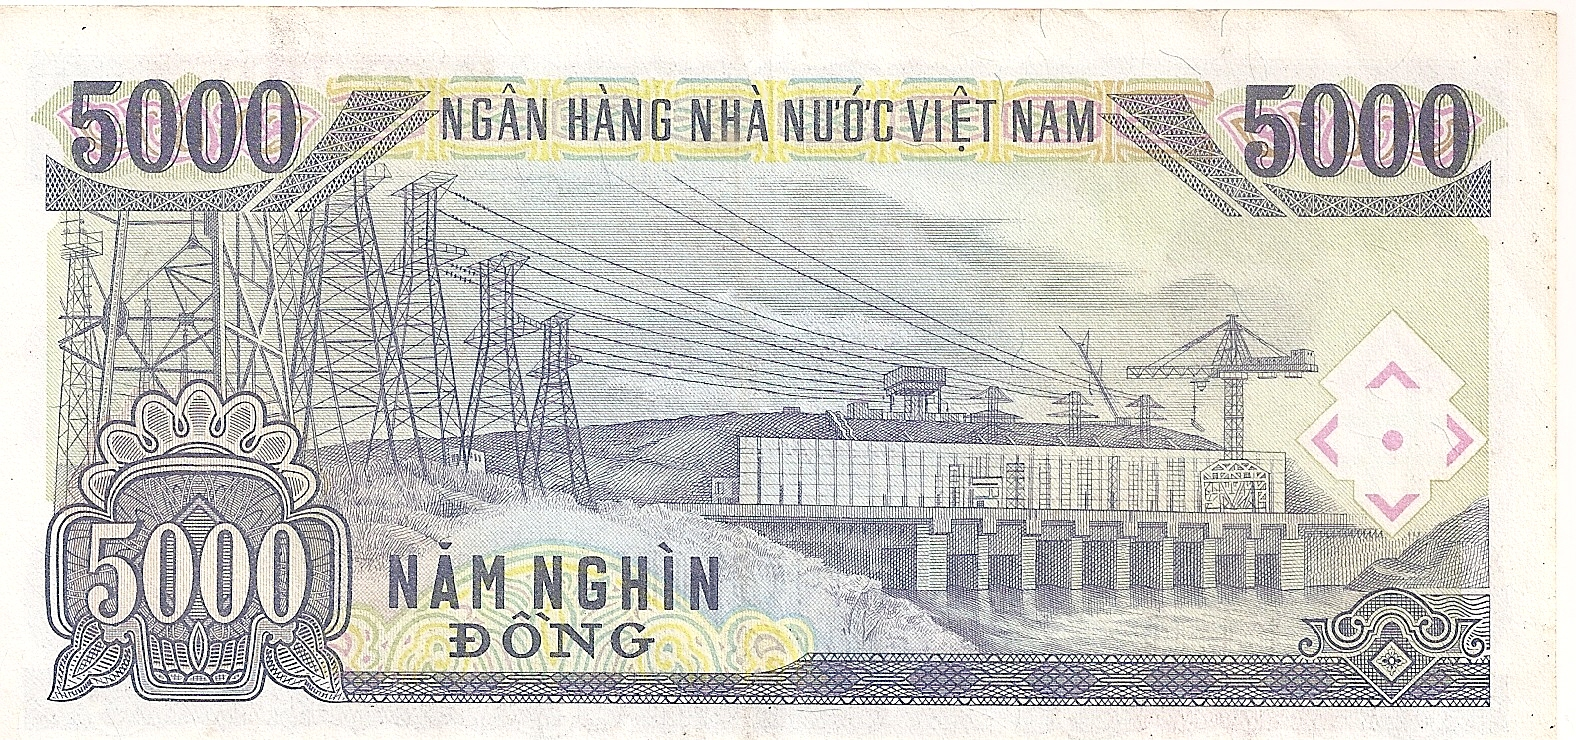 The 5000 dong banknote it is also referred to as the quot nam nghin dong